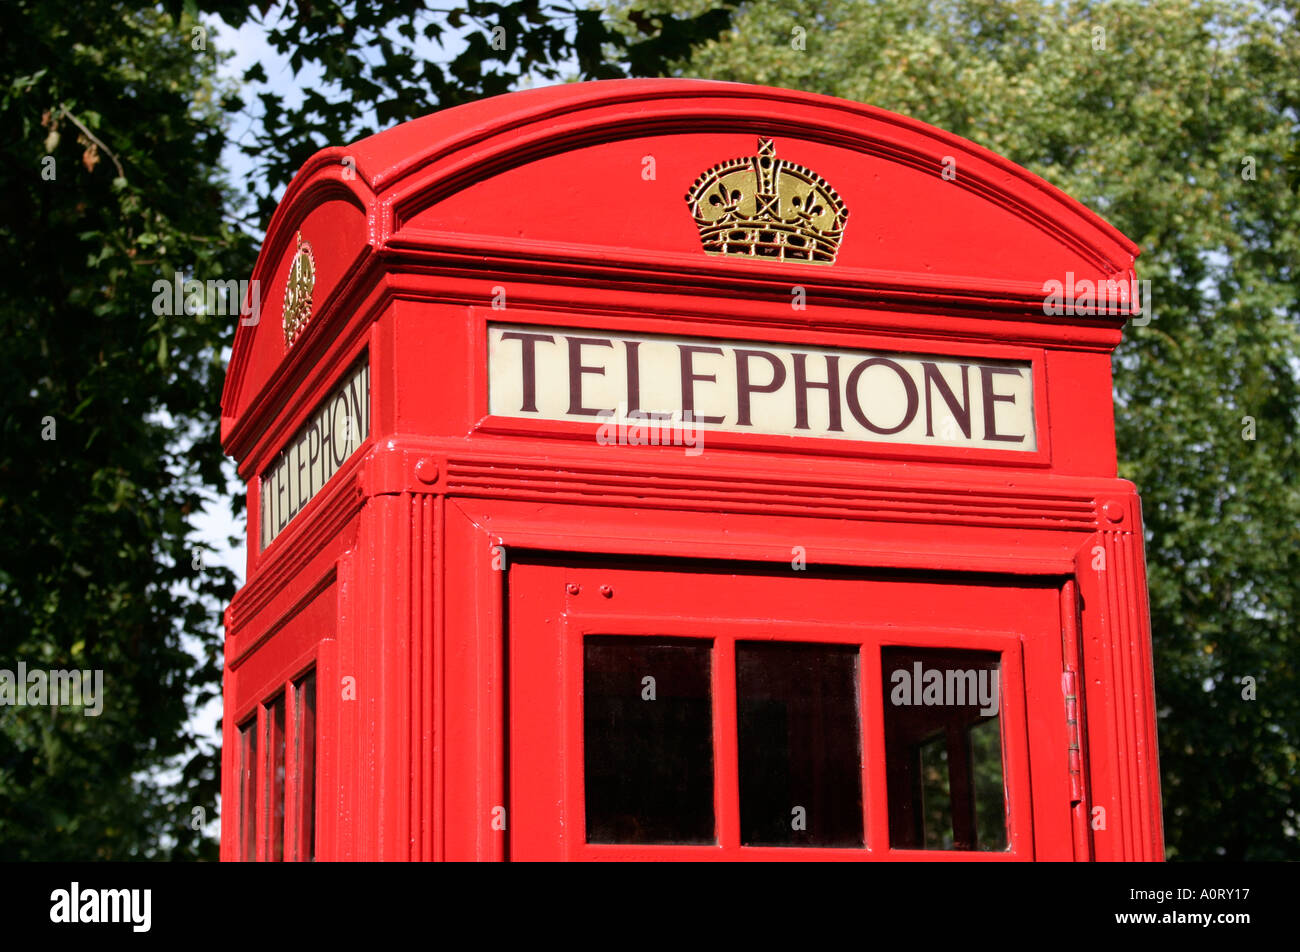 The top of a bright red phone box or booth in England with the word TELEPHONE in large black text - Stock Image